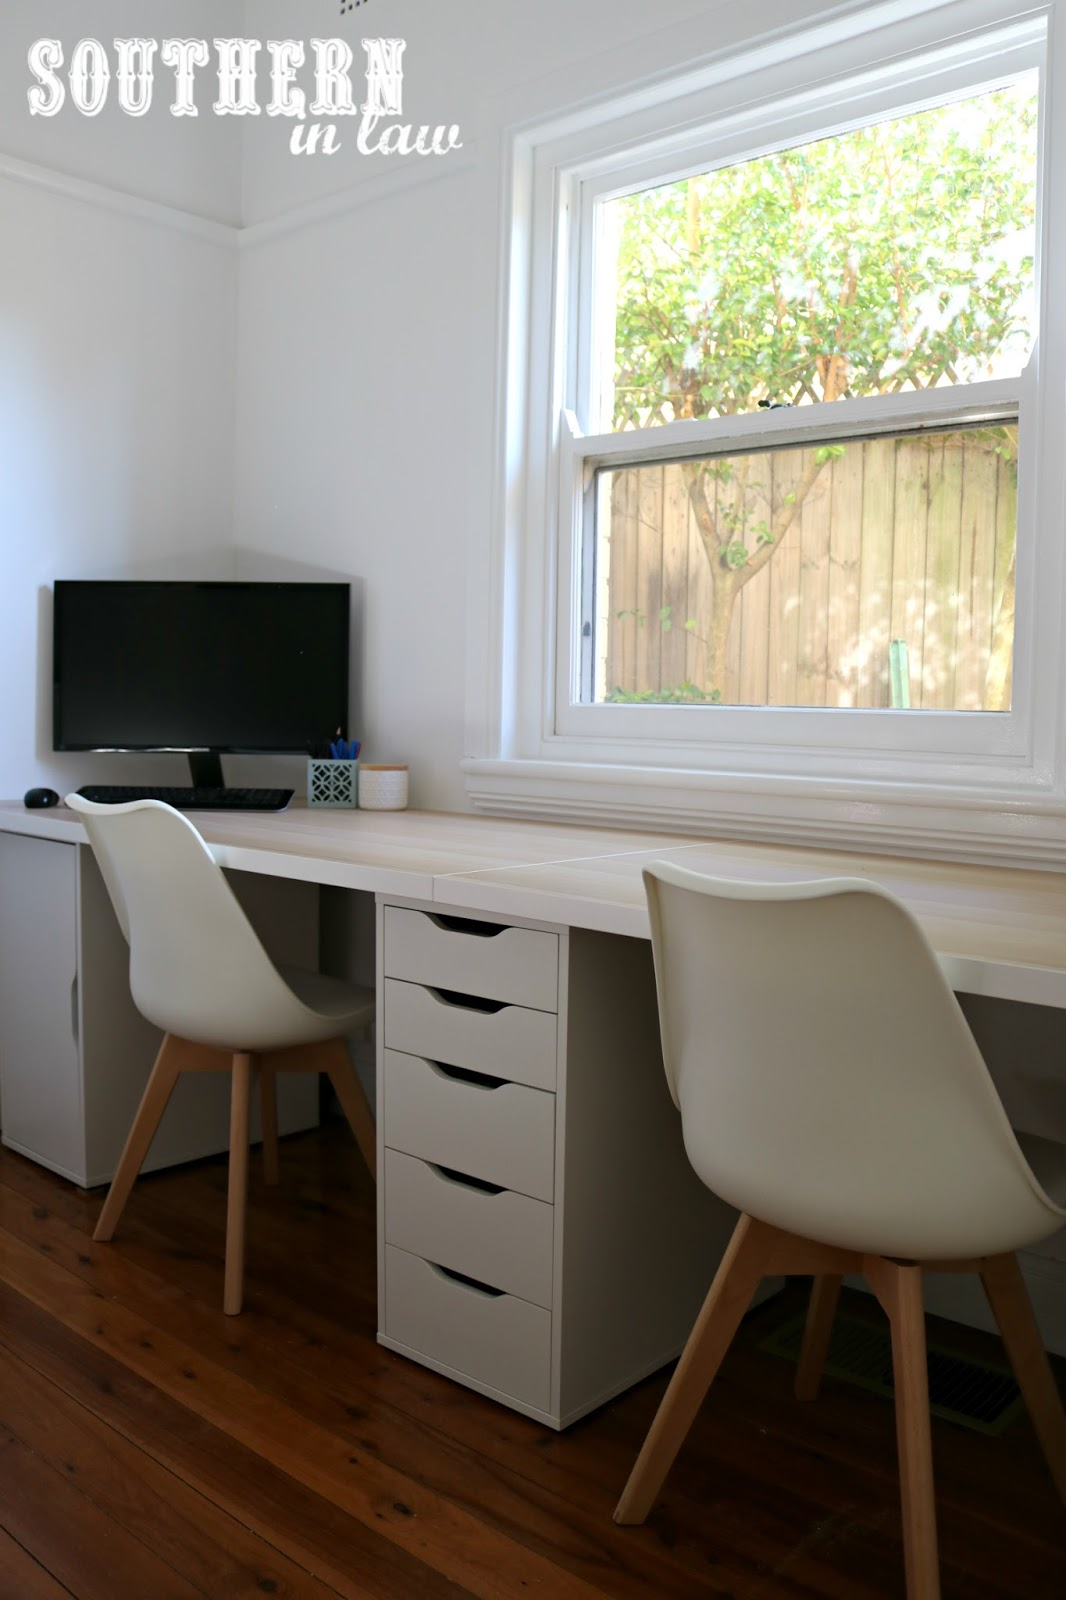 Genial Spare Bedroom To Home Office Makeover On A Budget   Unique Home Office Ideas  And How